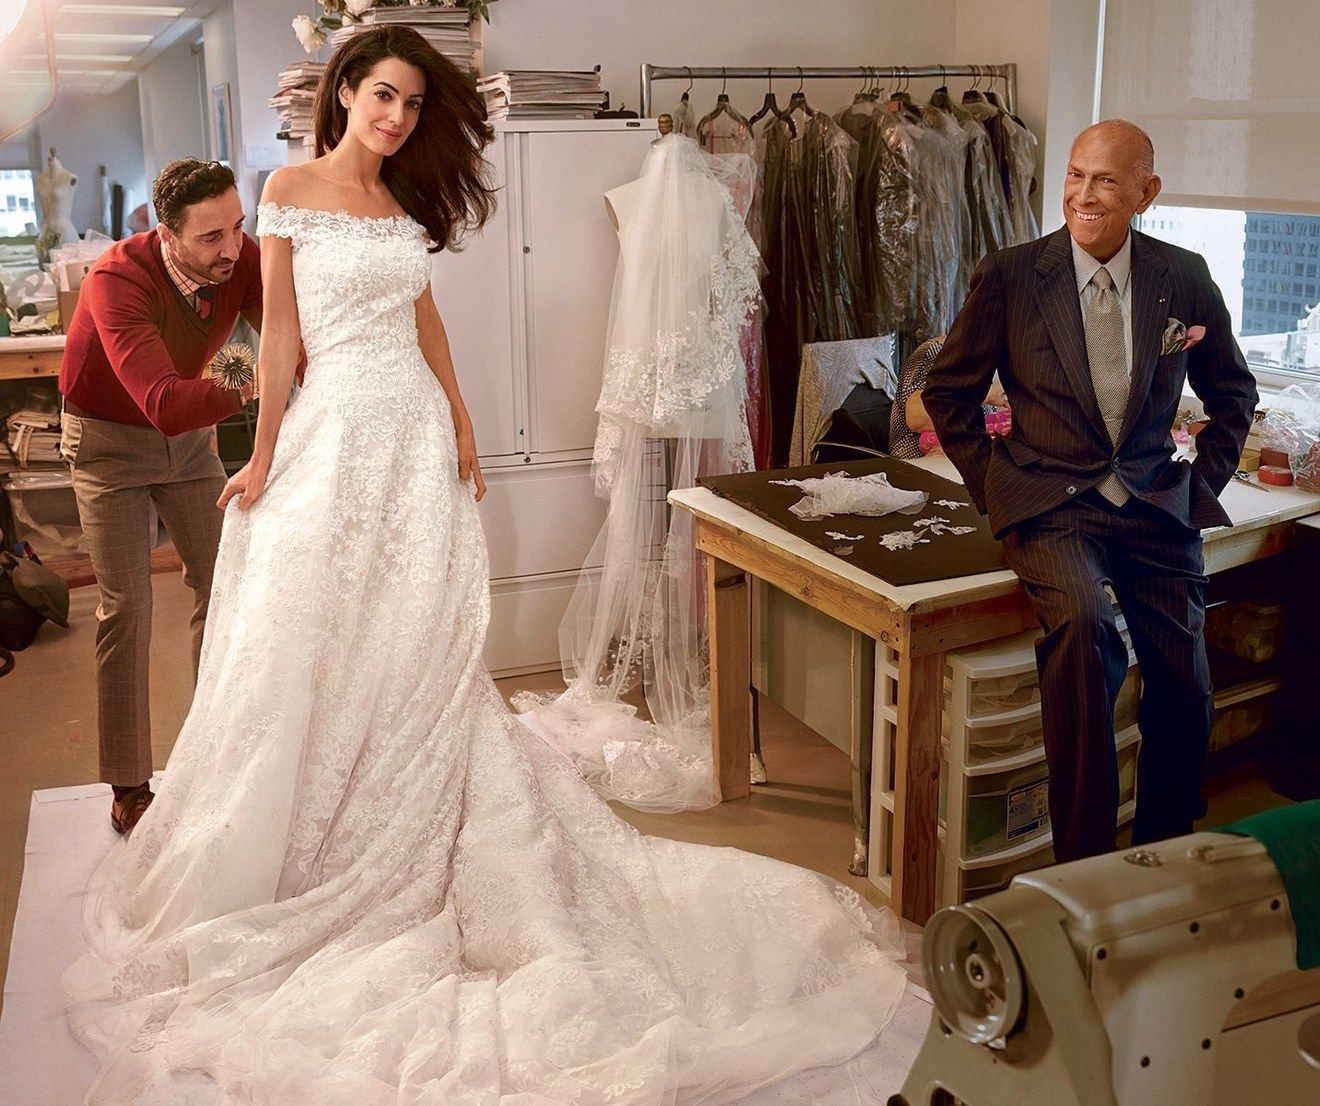 The most expensive wedding dress  The Best Celebrity Wedding Moments in  beautiful women  Pinterest